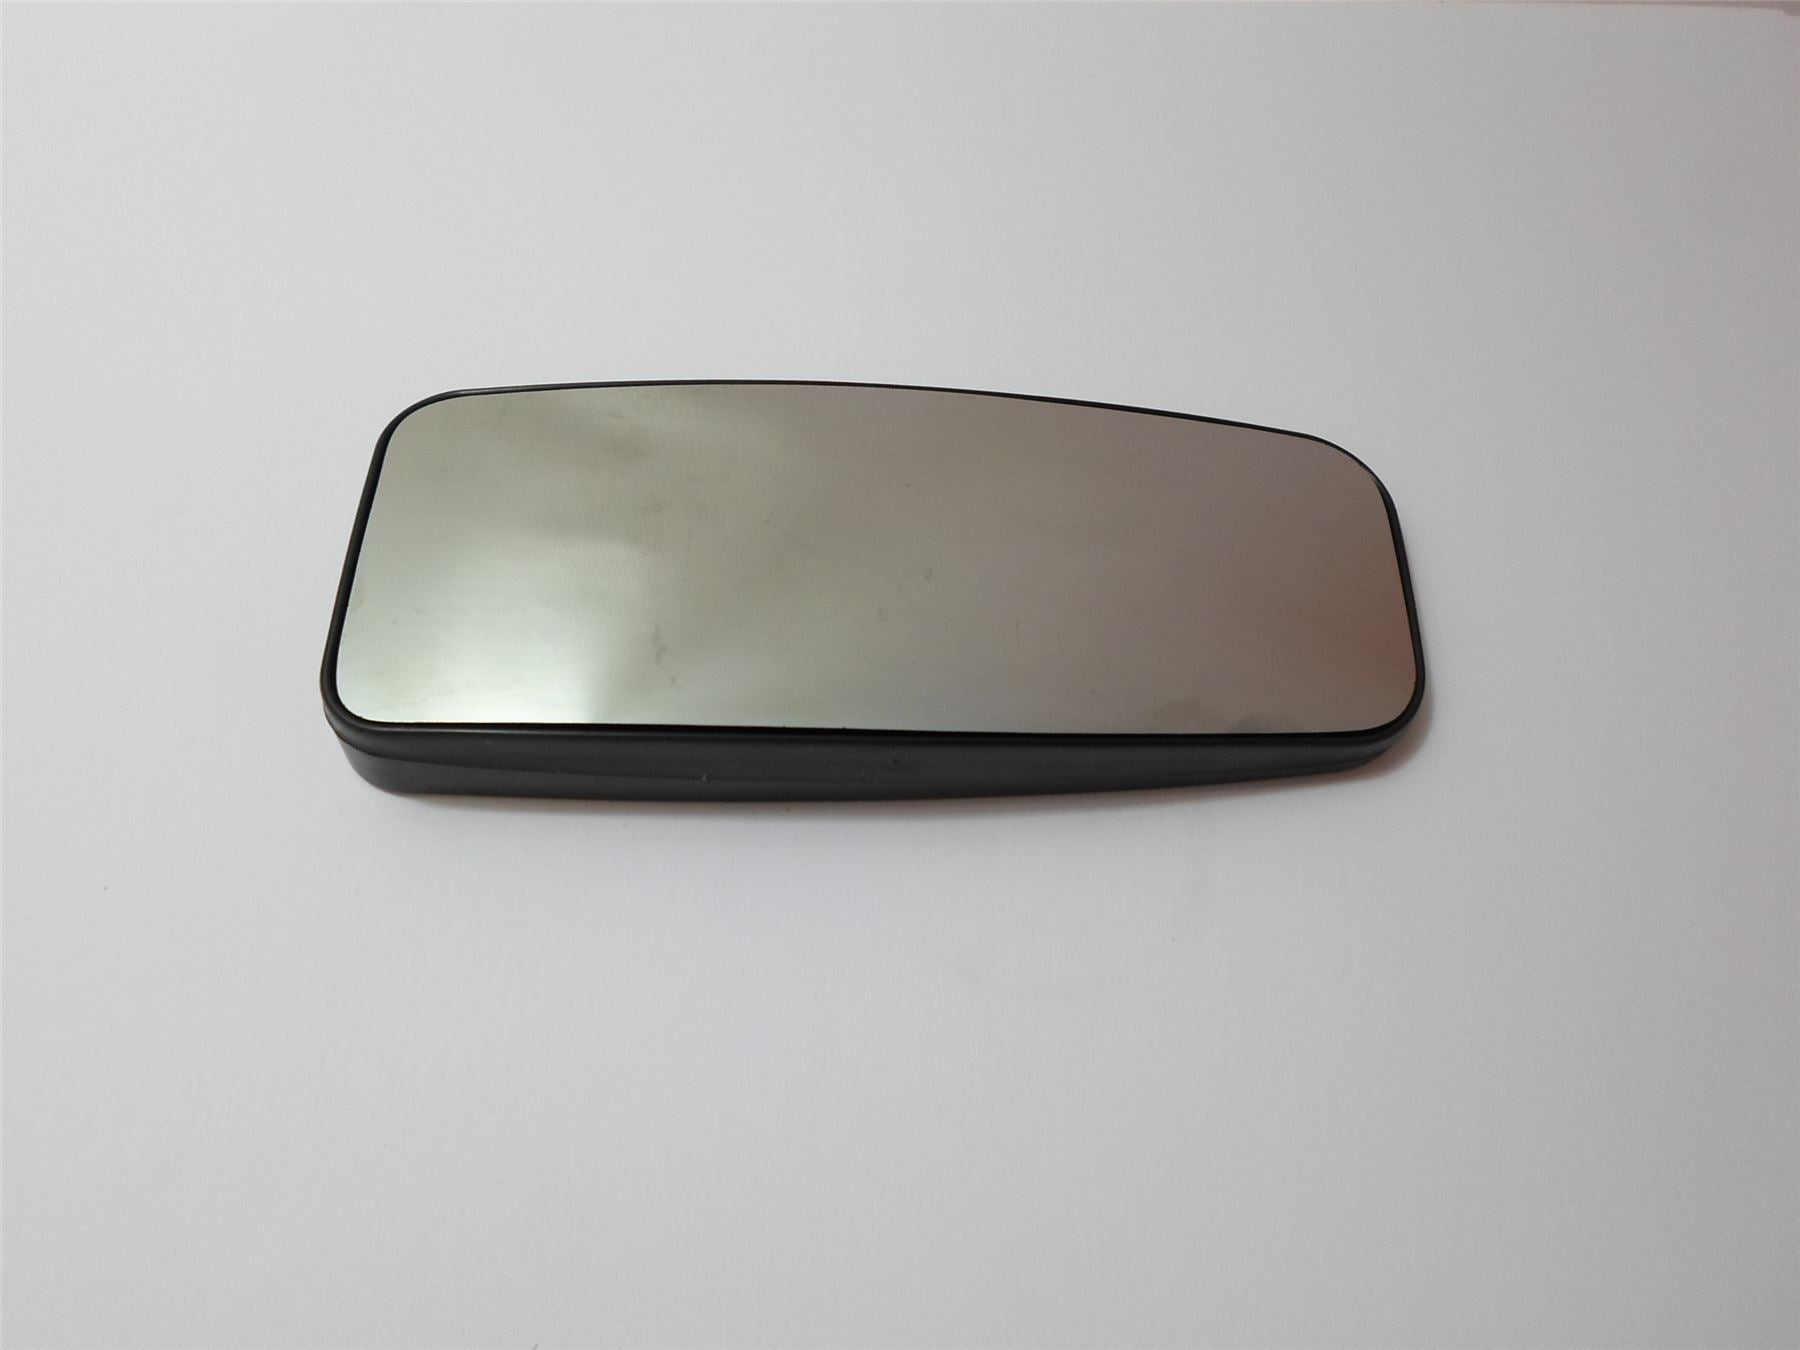 VW Crafter 2006-12/2018 Non-Heated Lower Dead Angle Mirror Glass Drivers Side O/S